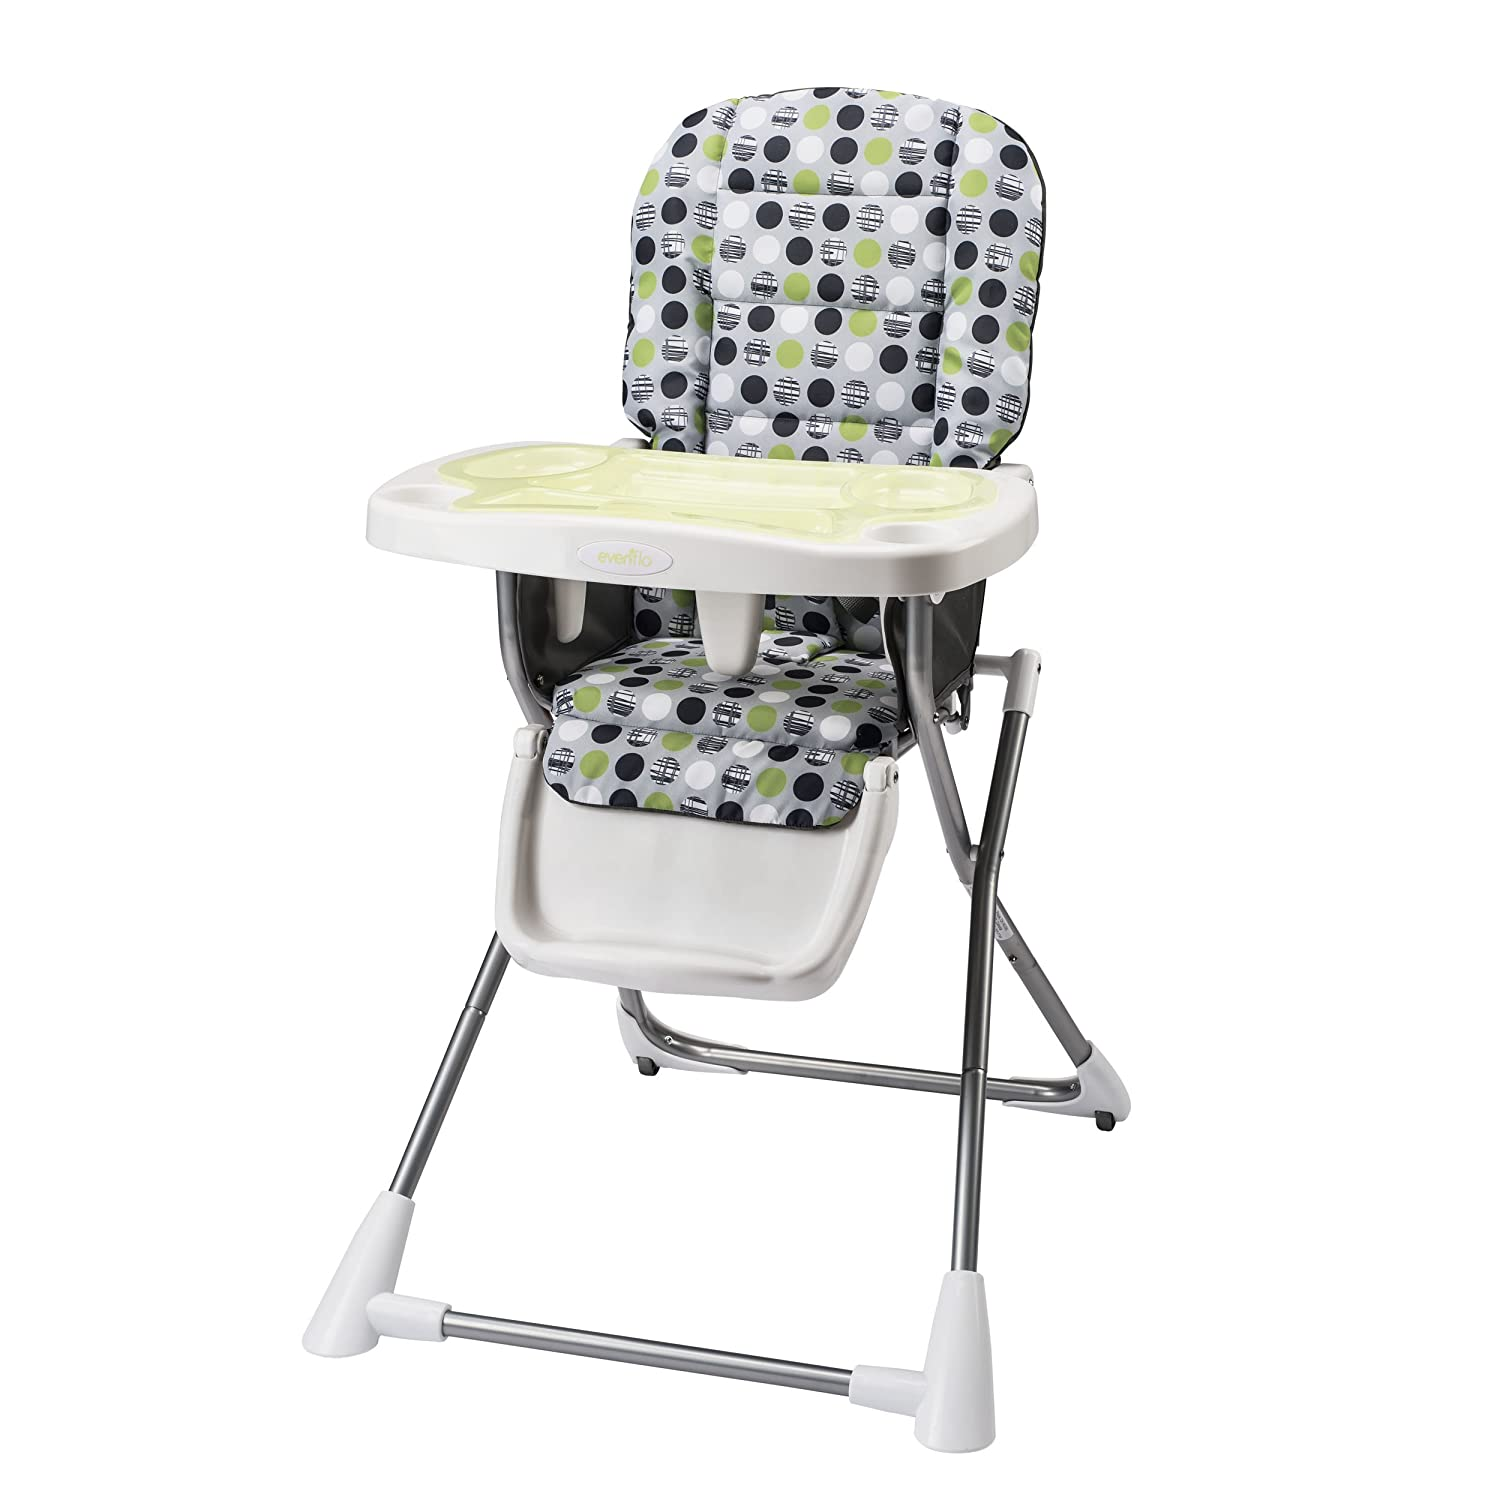 best high chair for baby ergonomic good back top 10 adjustable chairs 2016 2017 on